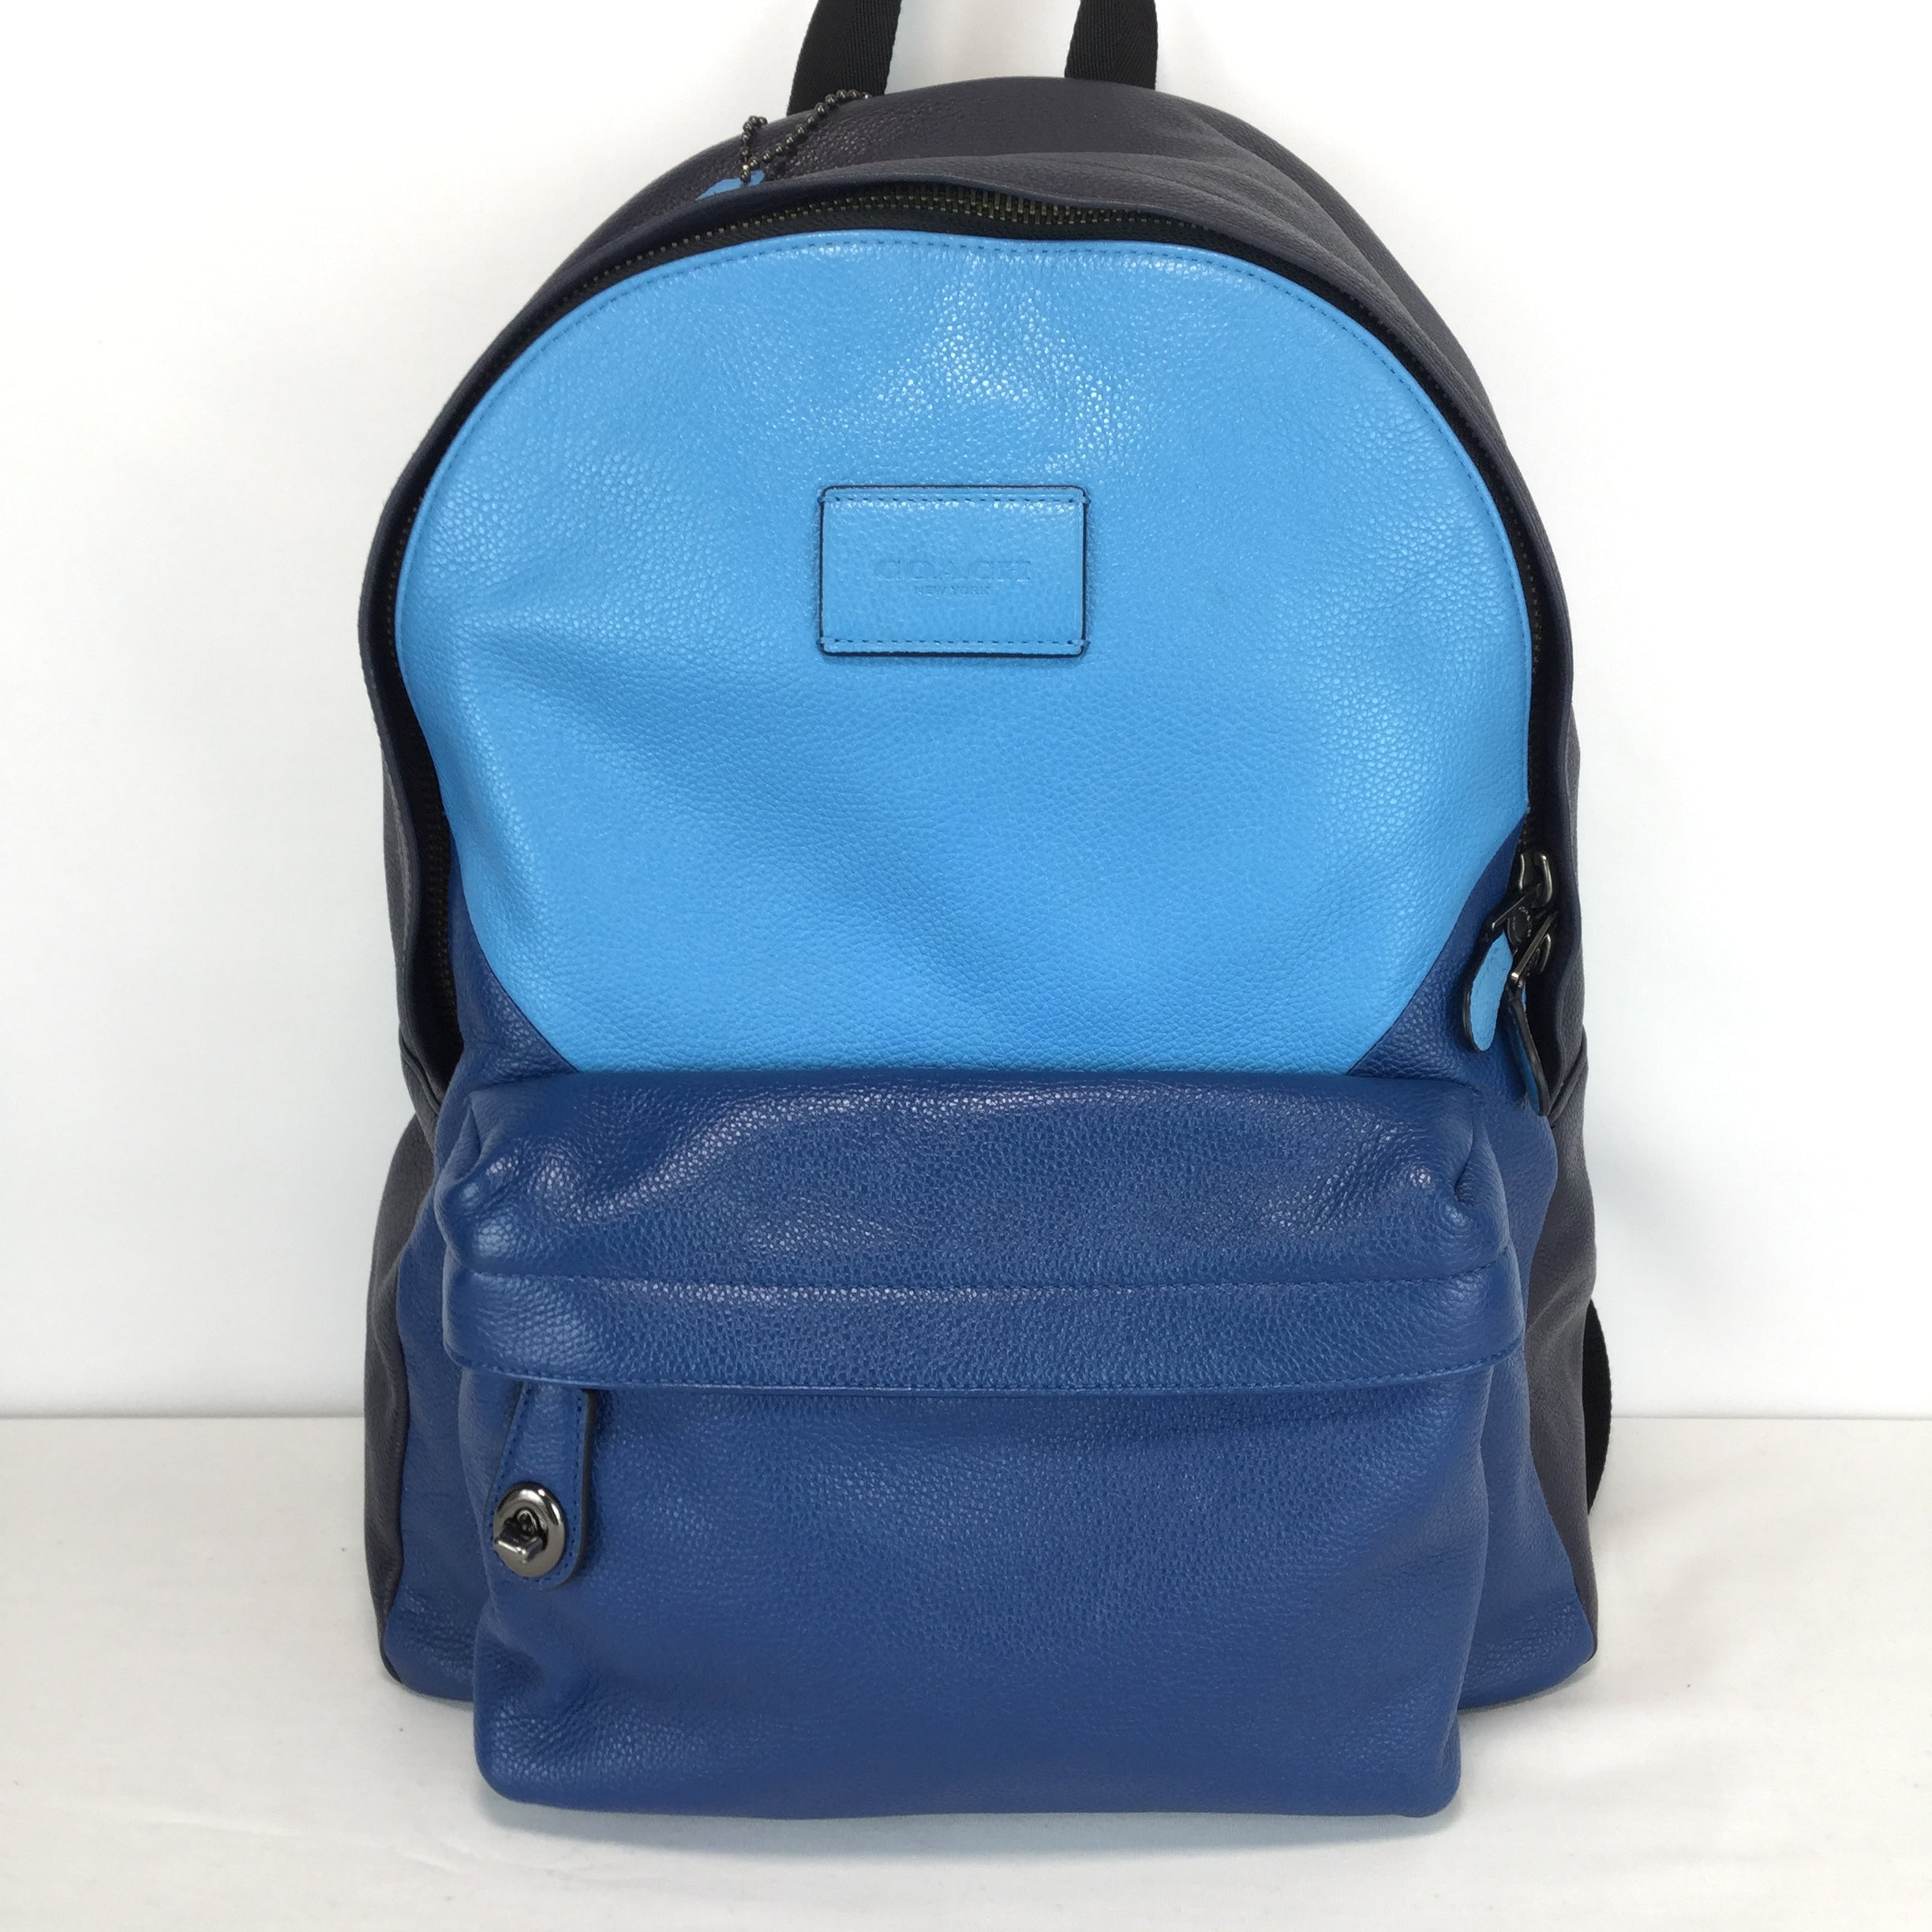 ACCESSORIES,PURSES AND HANDBAGS - THIS BACKPACK IS SO NICE IN A TRI-COLOR BLUE. LEATHER MATERIAL, ADJUSTABLE STRAPS, FRONT ZIPPED POCKET, 3 INSIDE SLIP POCKETS, AND 1 INSIDE ZIP POCKET.